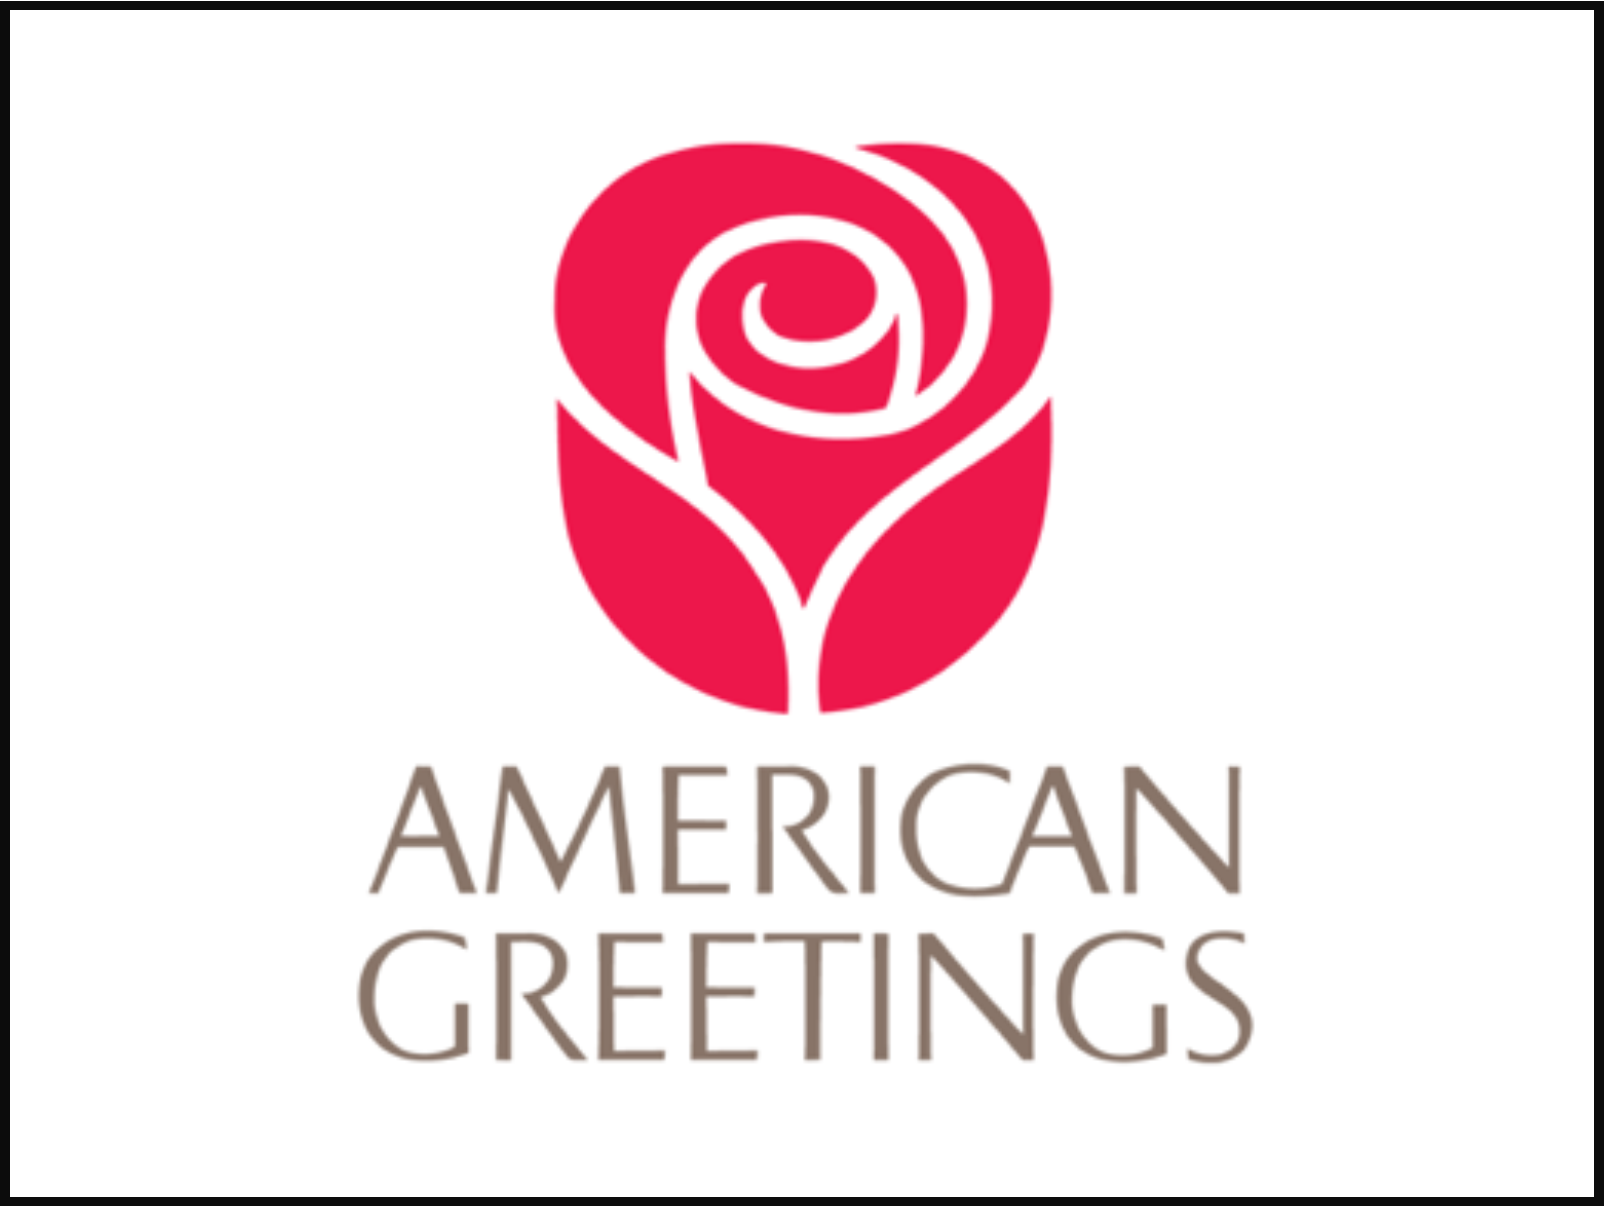 Cdr To Acquire American Greetings Private Equity Professional